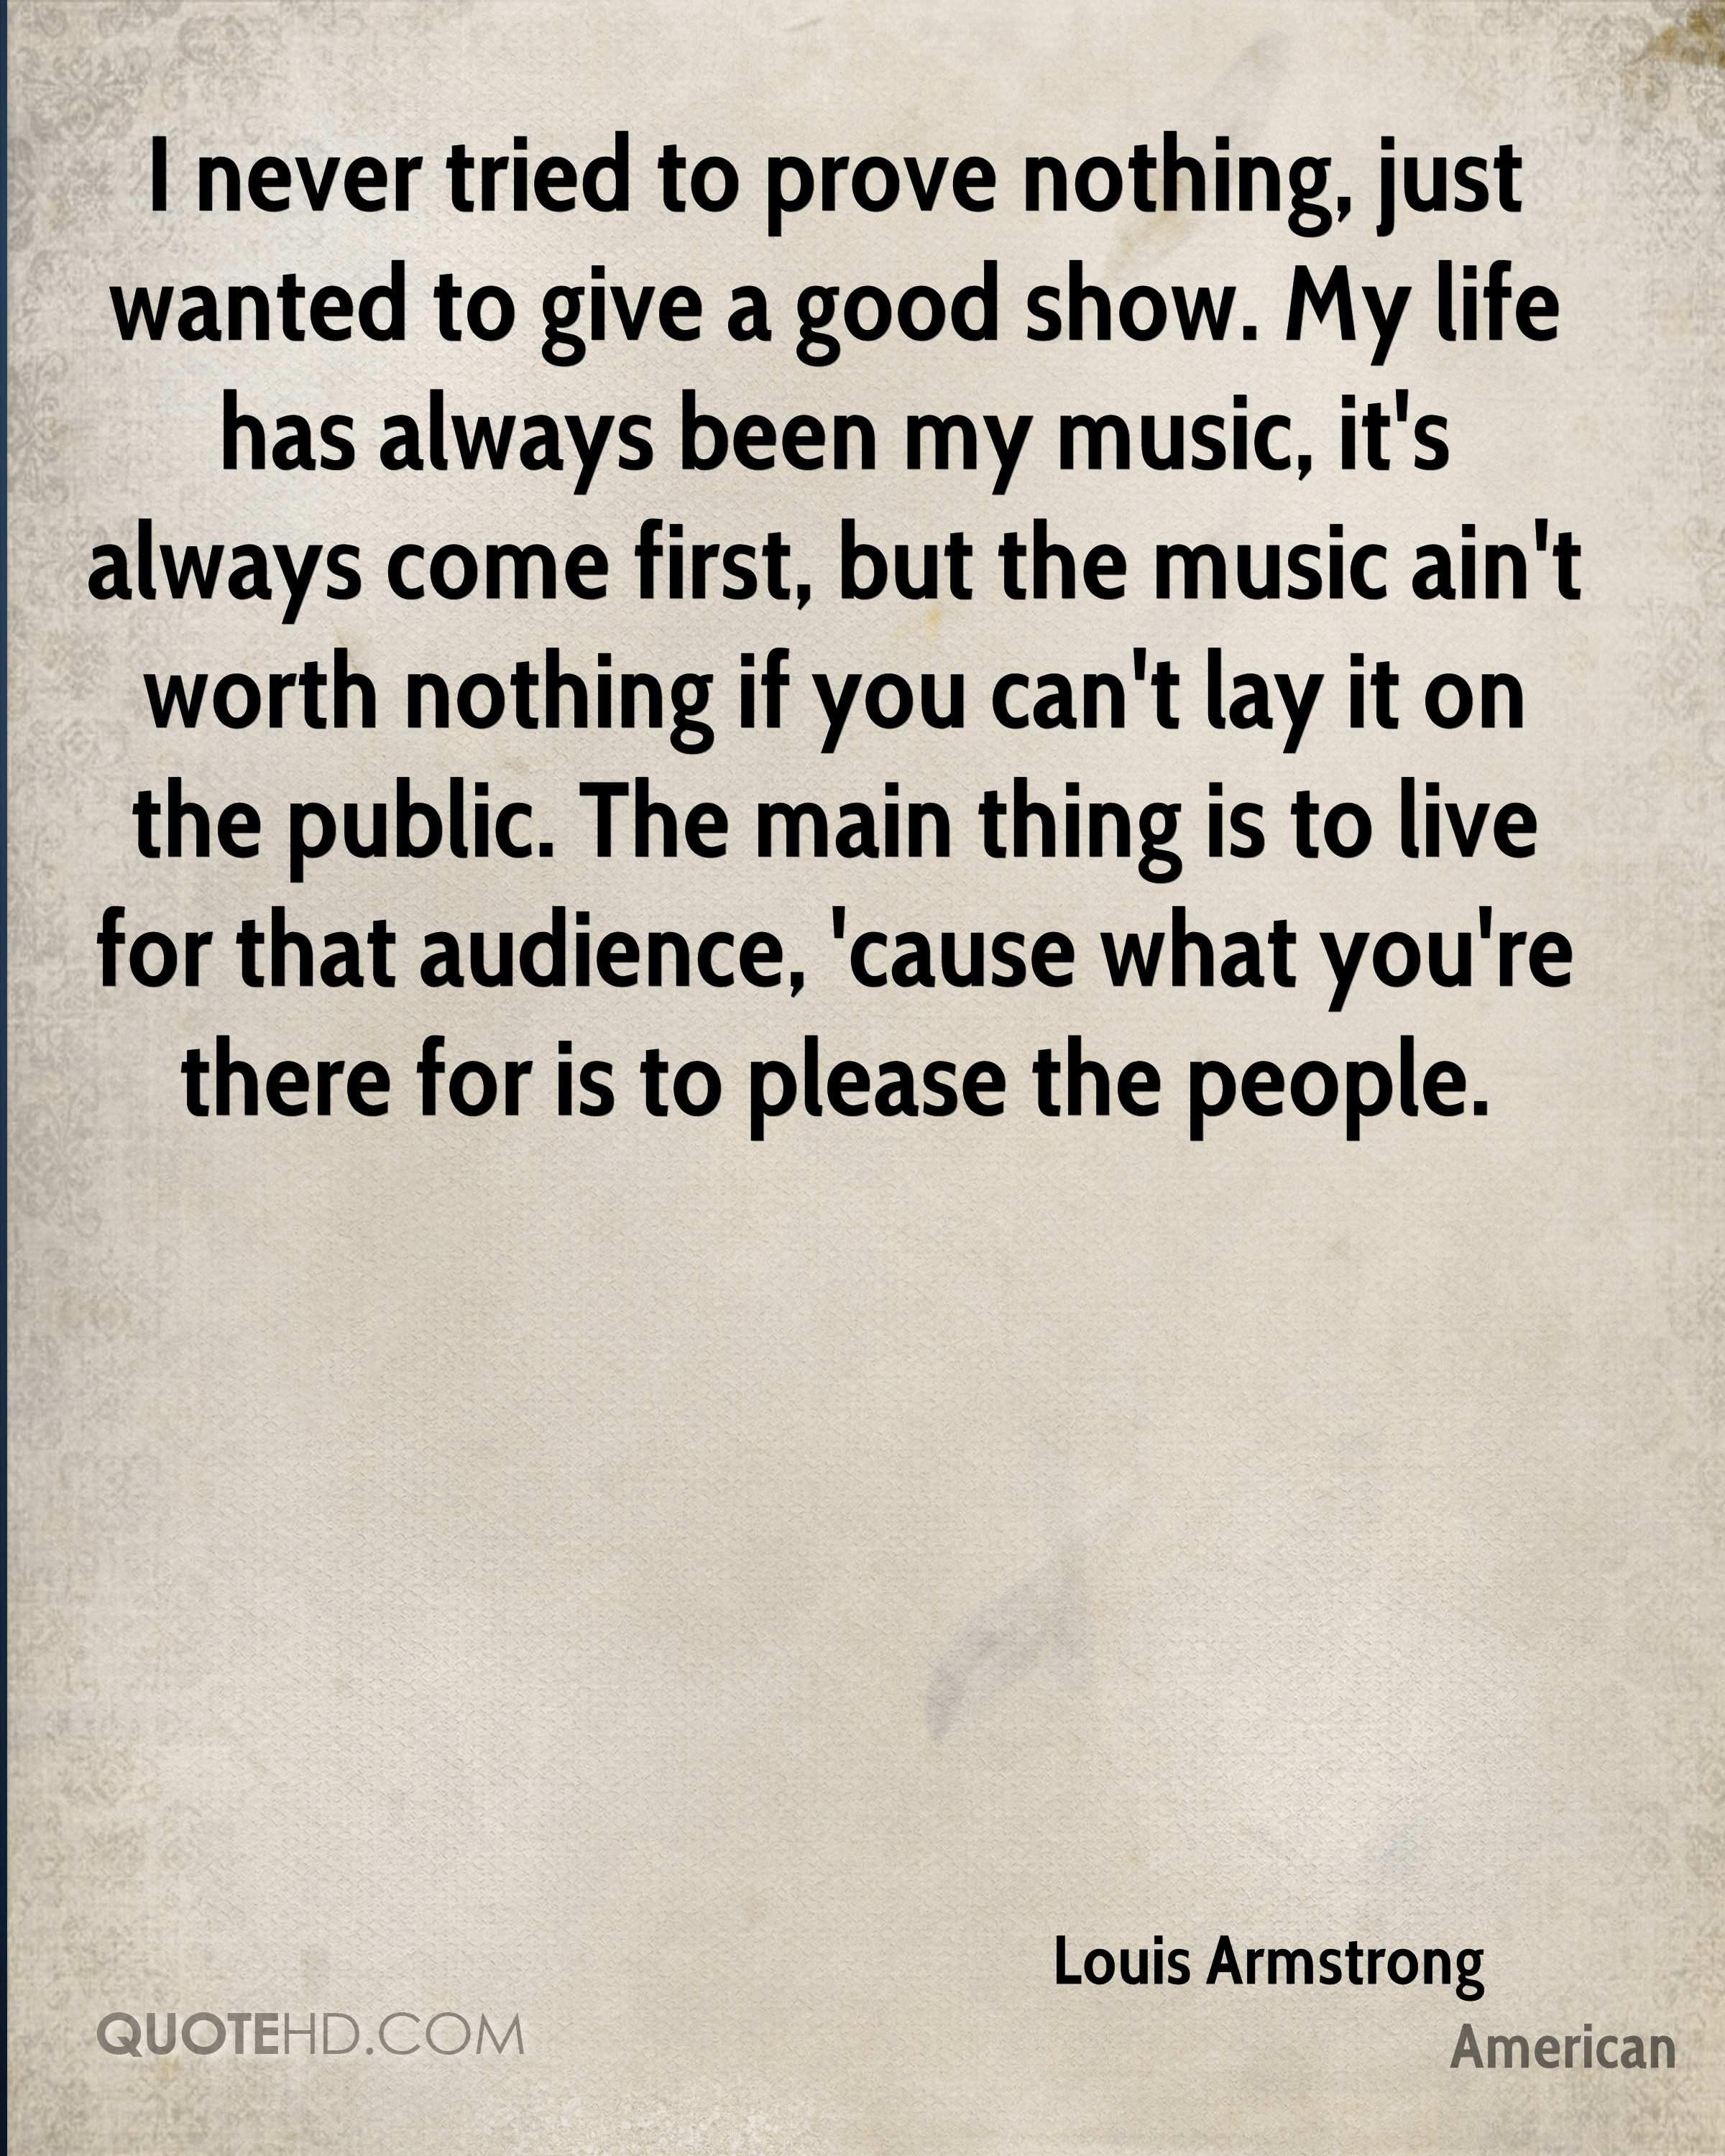 Louis Armstrong Life Quotes Quotehd